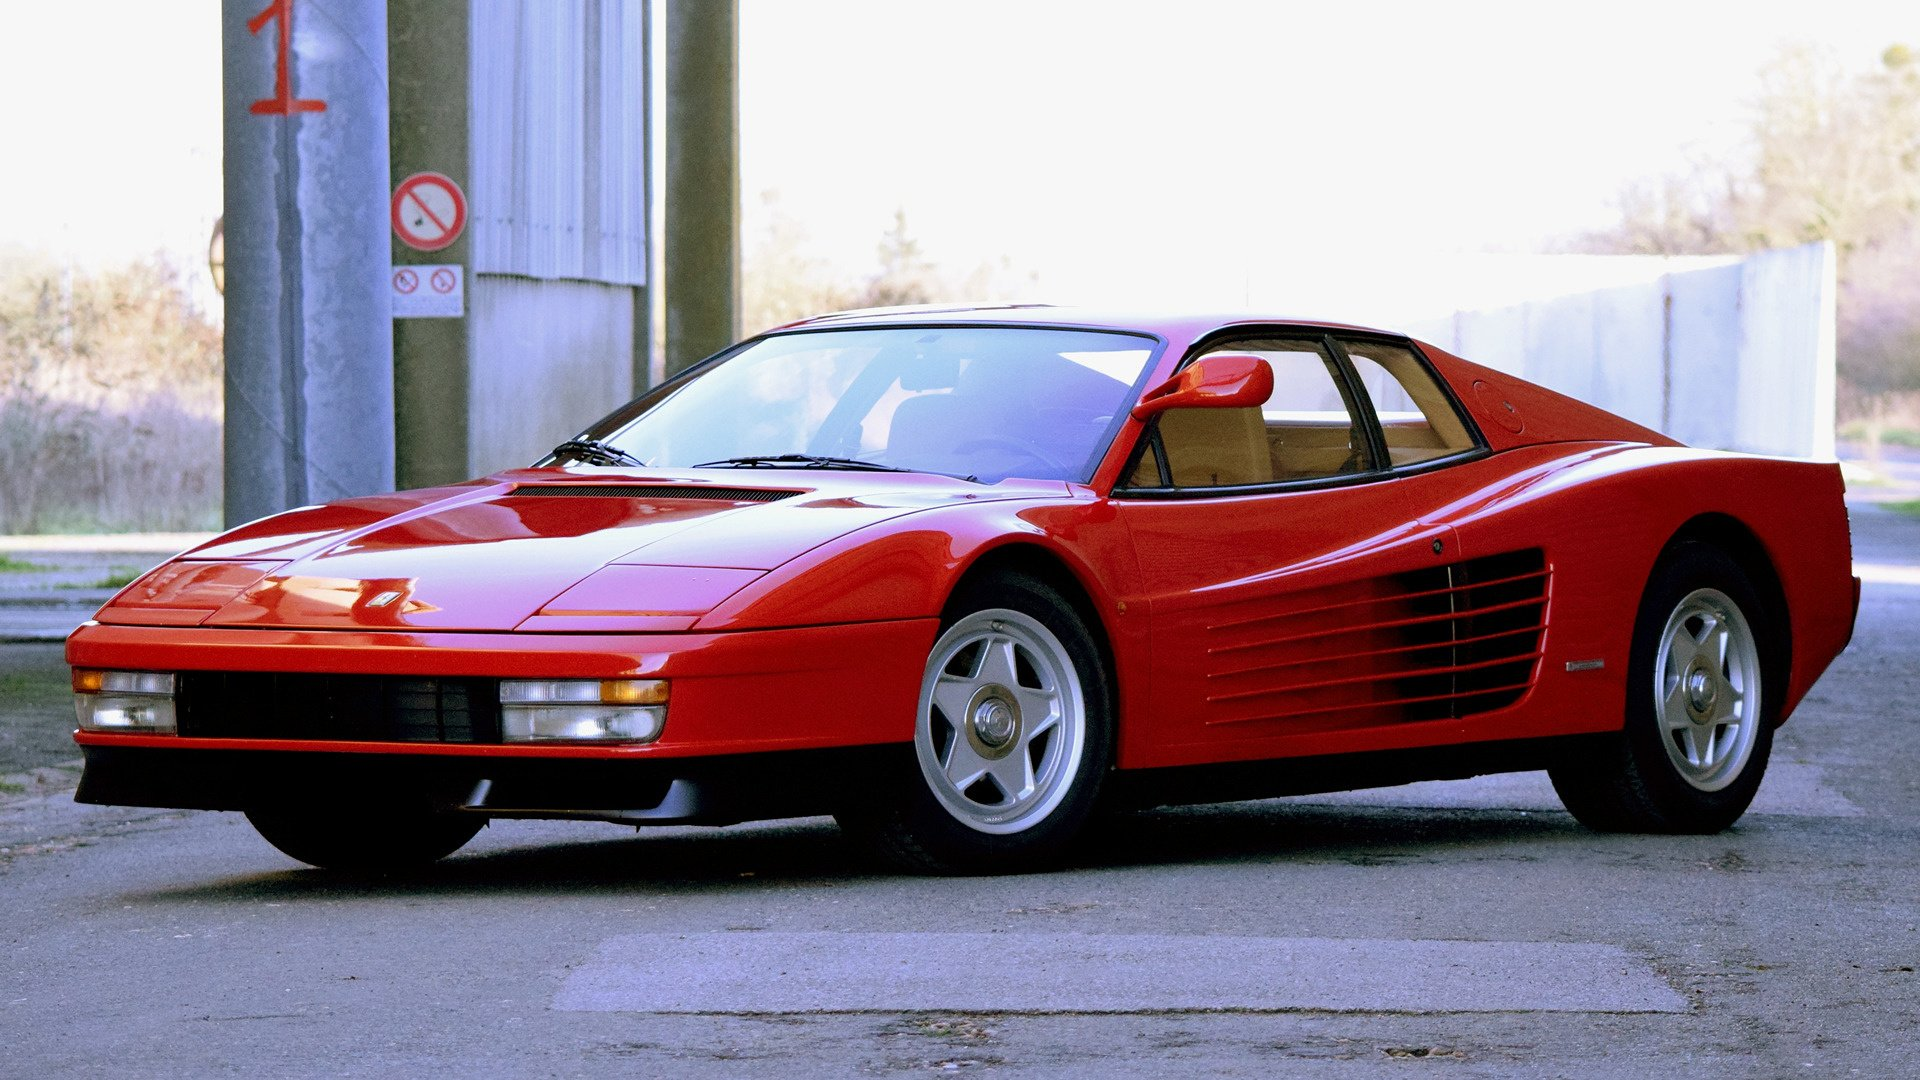 38 Ferrari Testarossa Hd Wallpapers Background Images Wallpaper Abyss Page 2